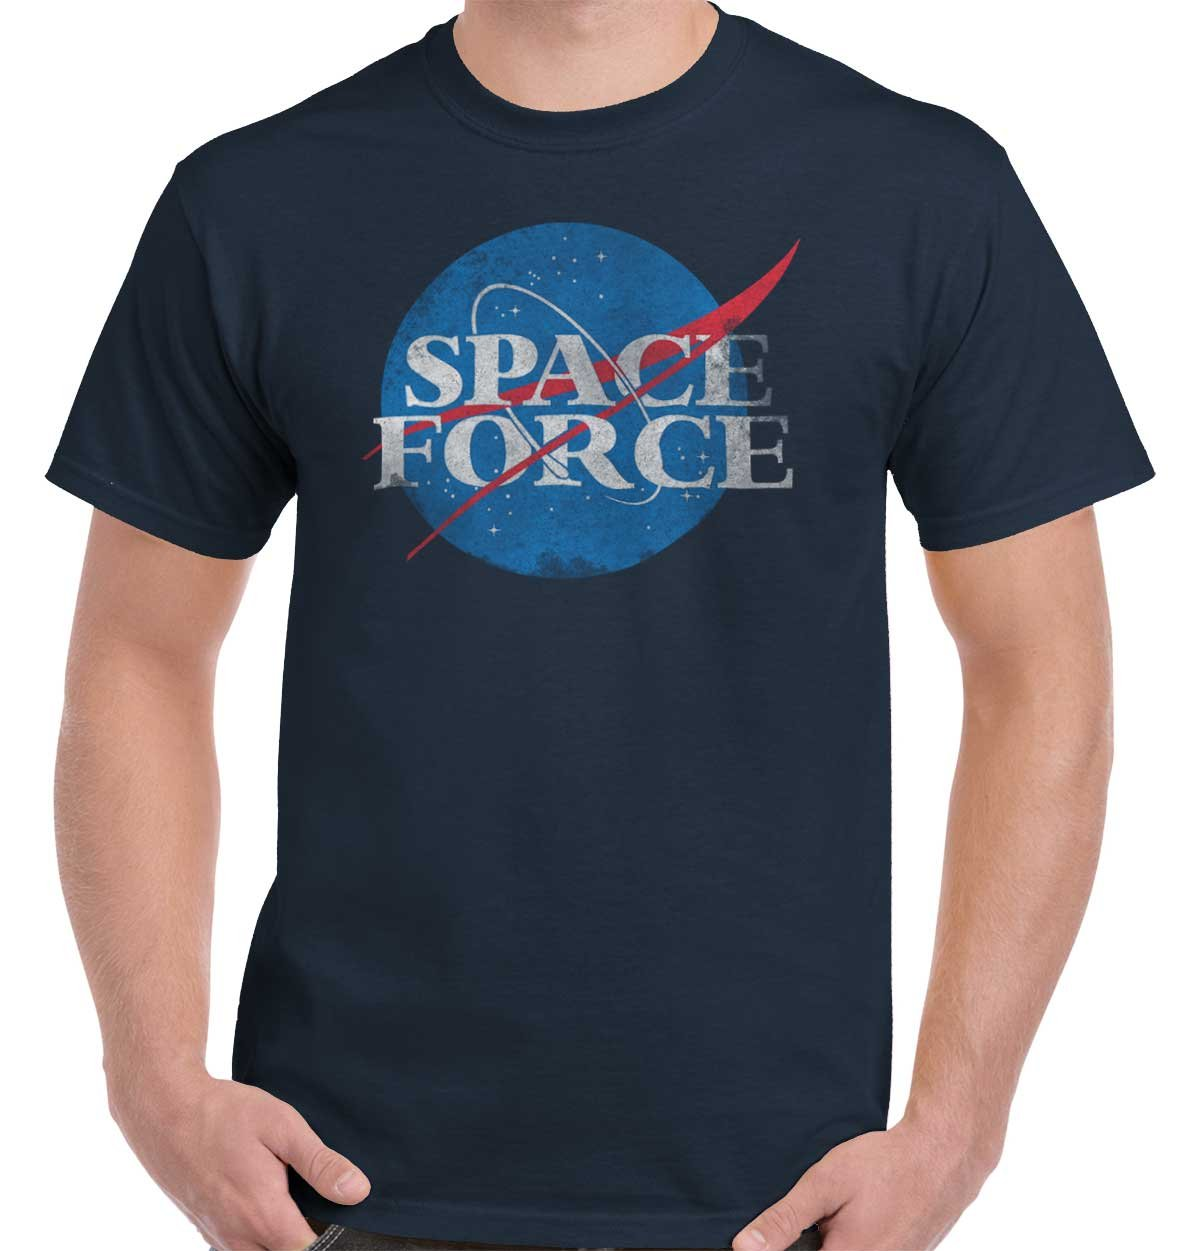 Space Force USSF Donald Trump United States Yuge Military USA T Shirt Tee